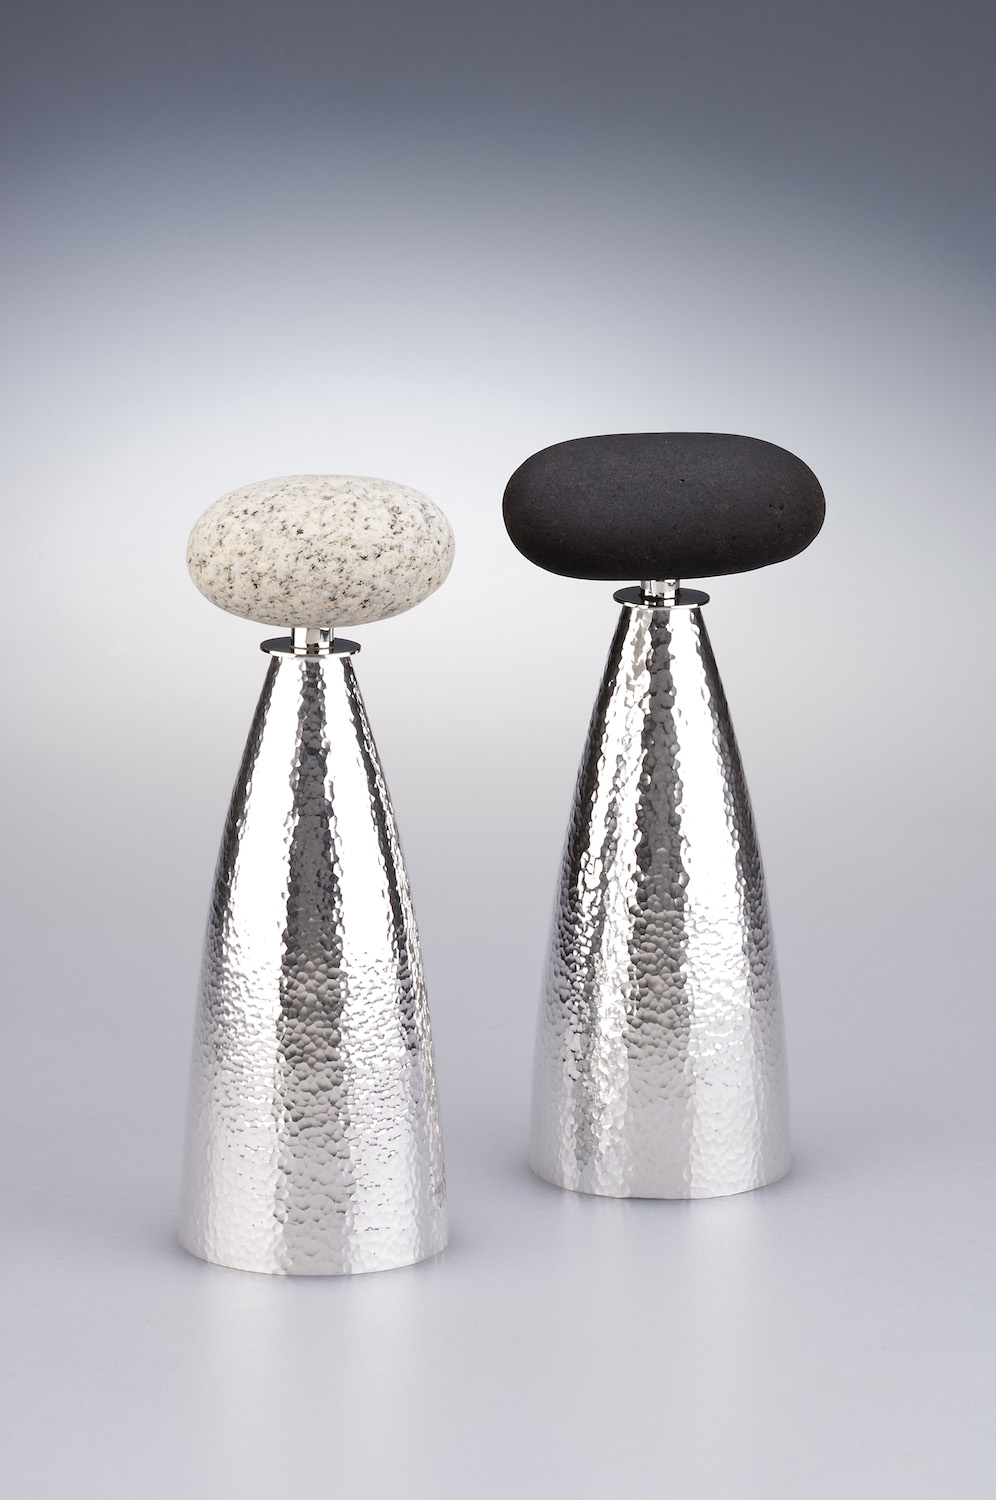 SALT AND PEPPER GRINDERS WITH STONE